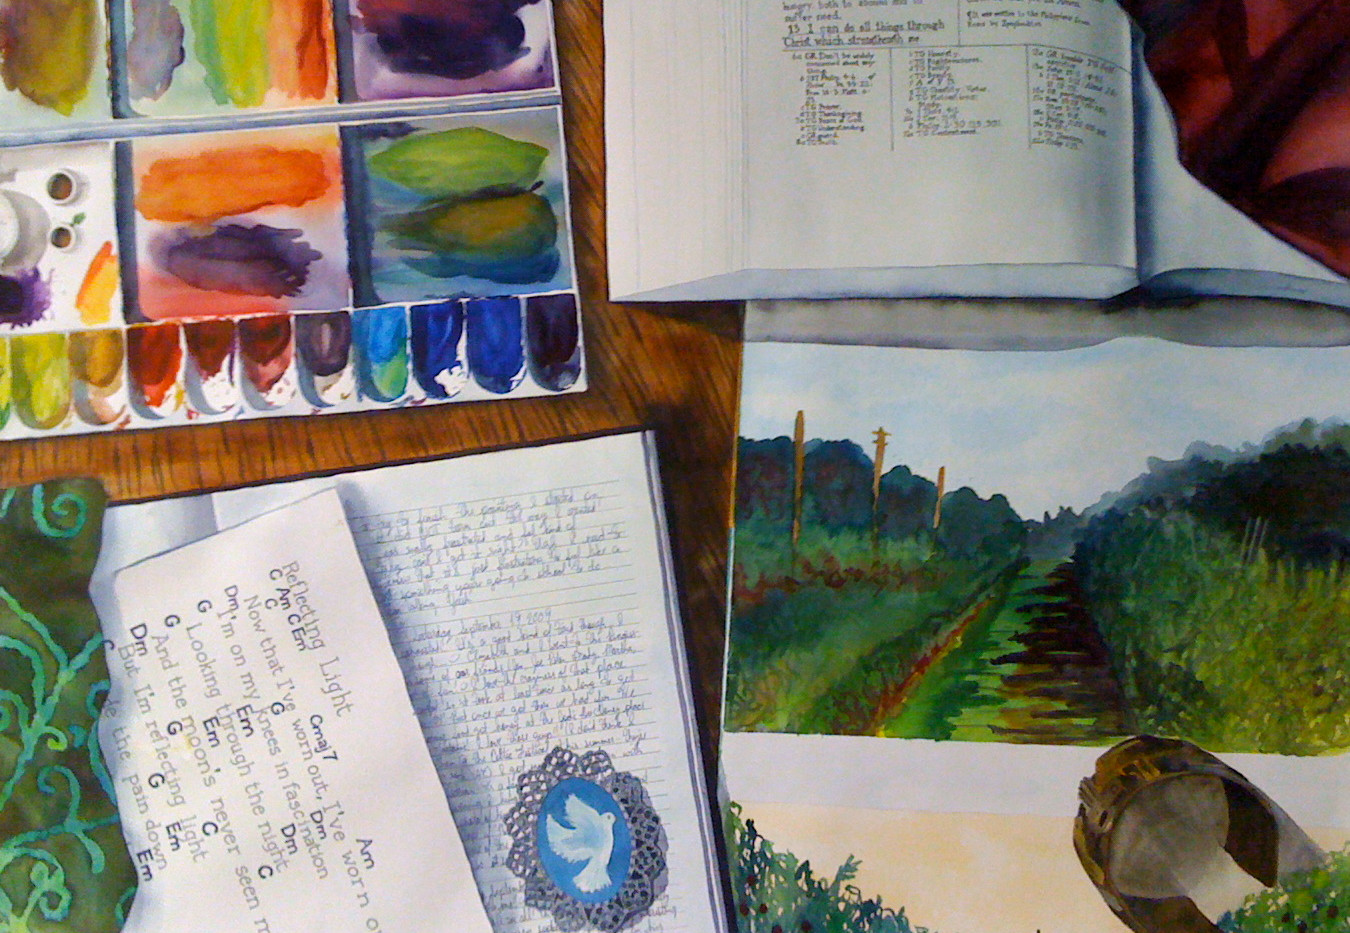 On My Table Bible 2